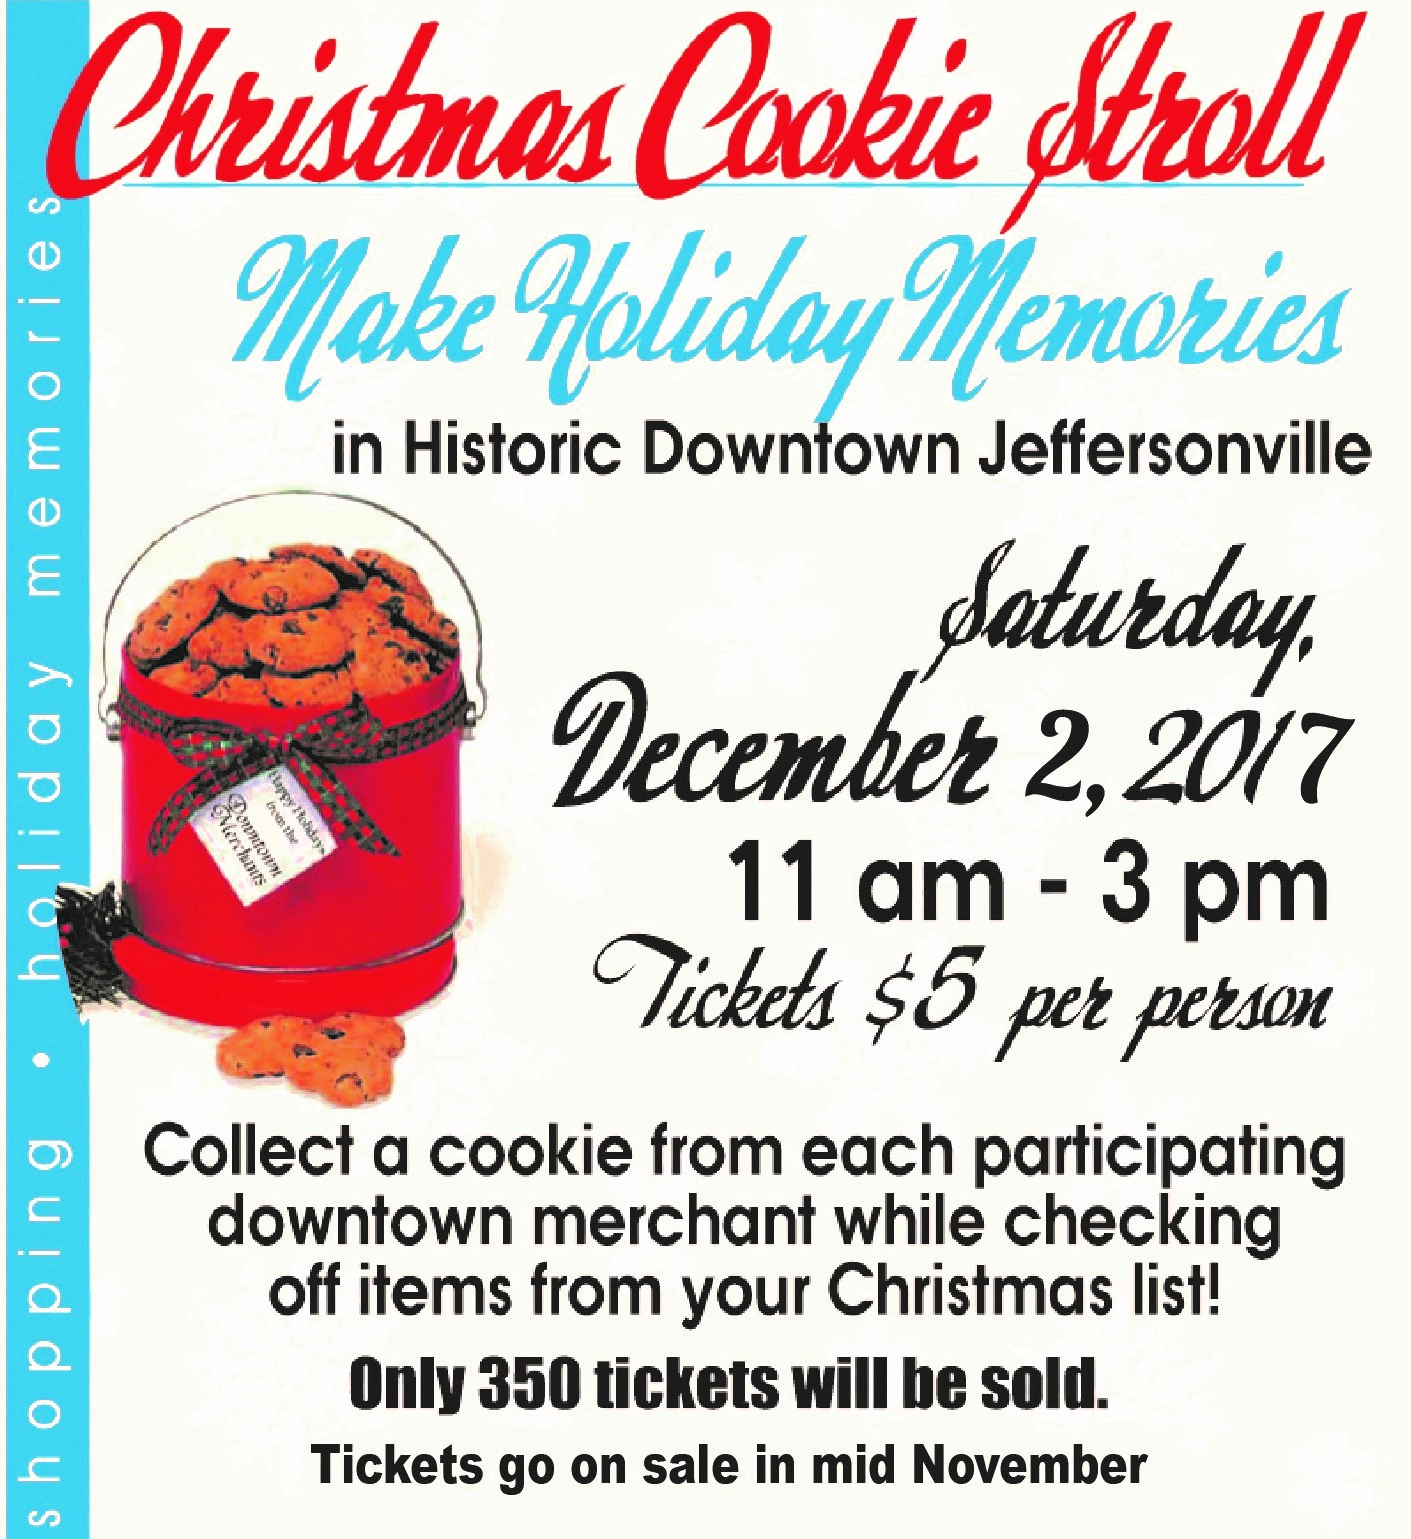 Click here for Christmas Cookie Stroll Tickets!